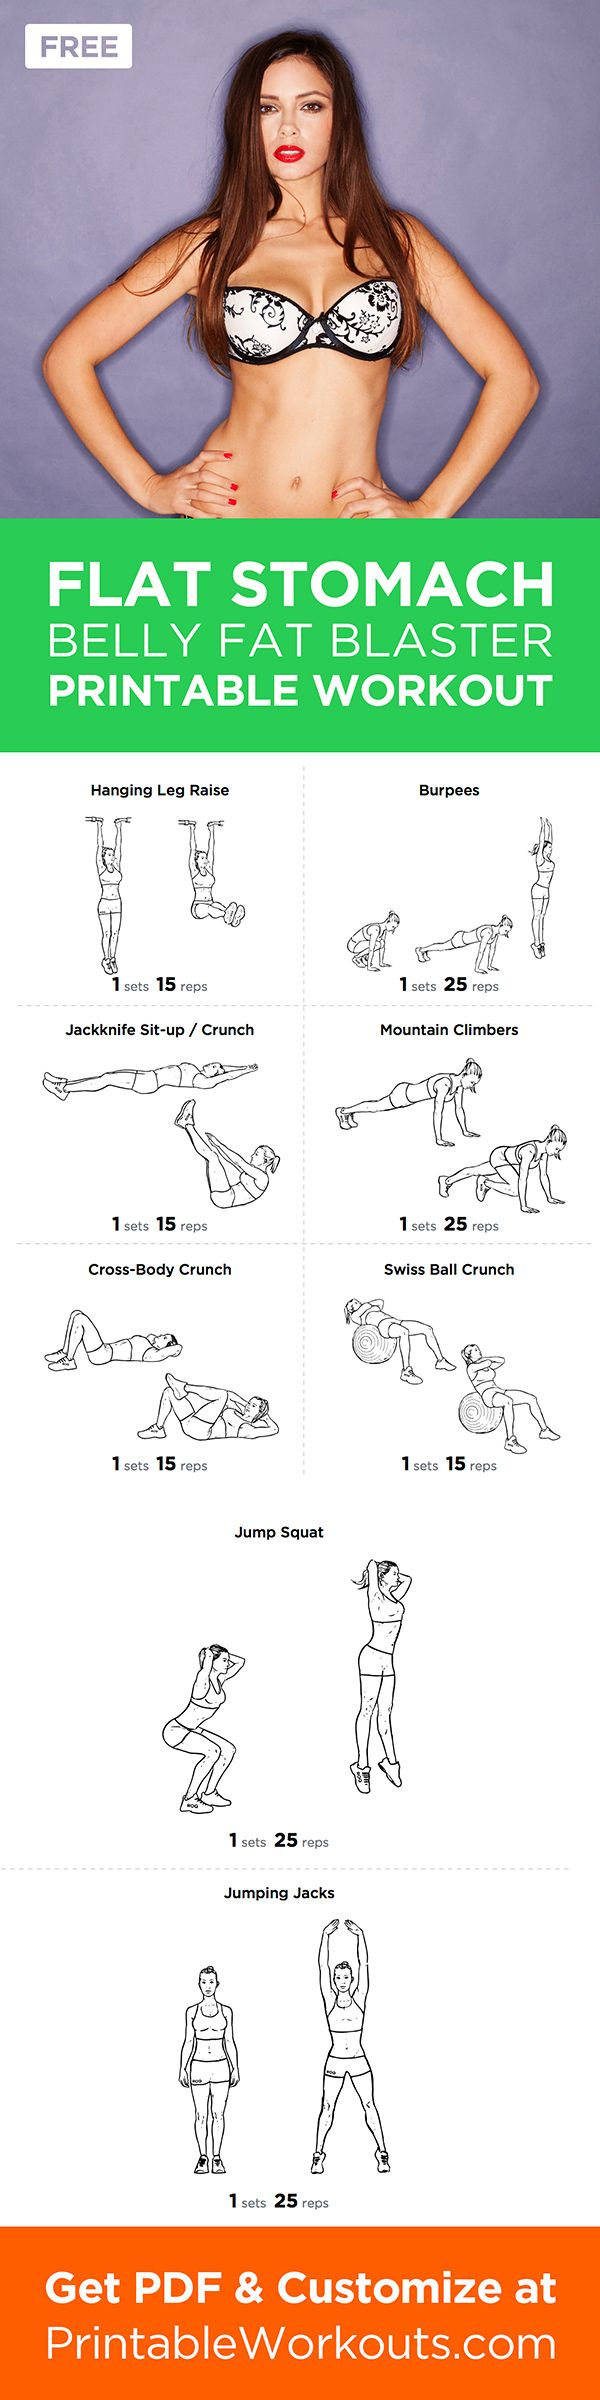 Looking to firm and flatten your stomach for the summer months ahead? This workout will do all that and burn fat at once.